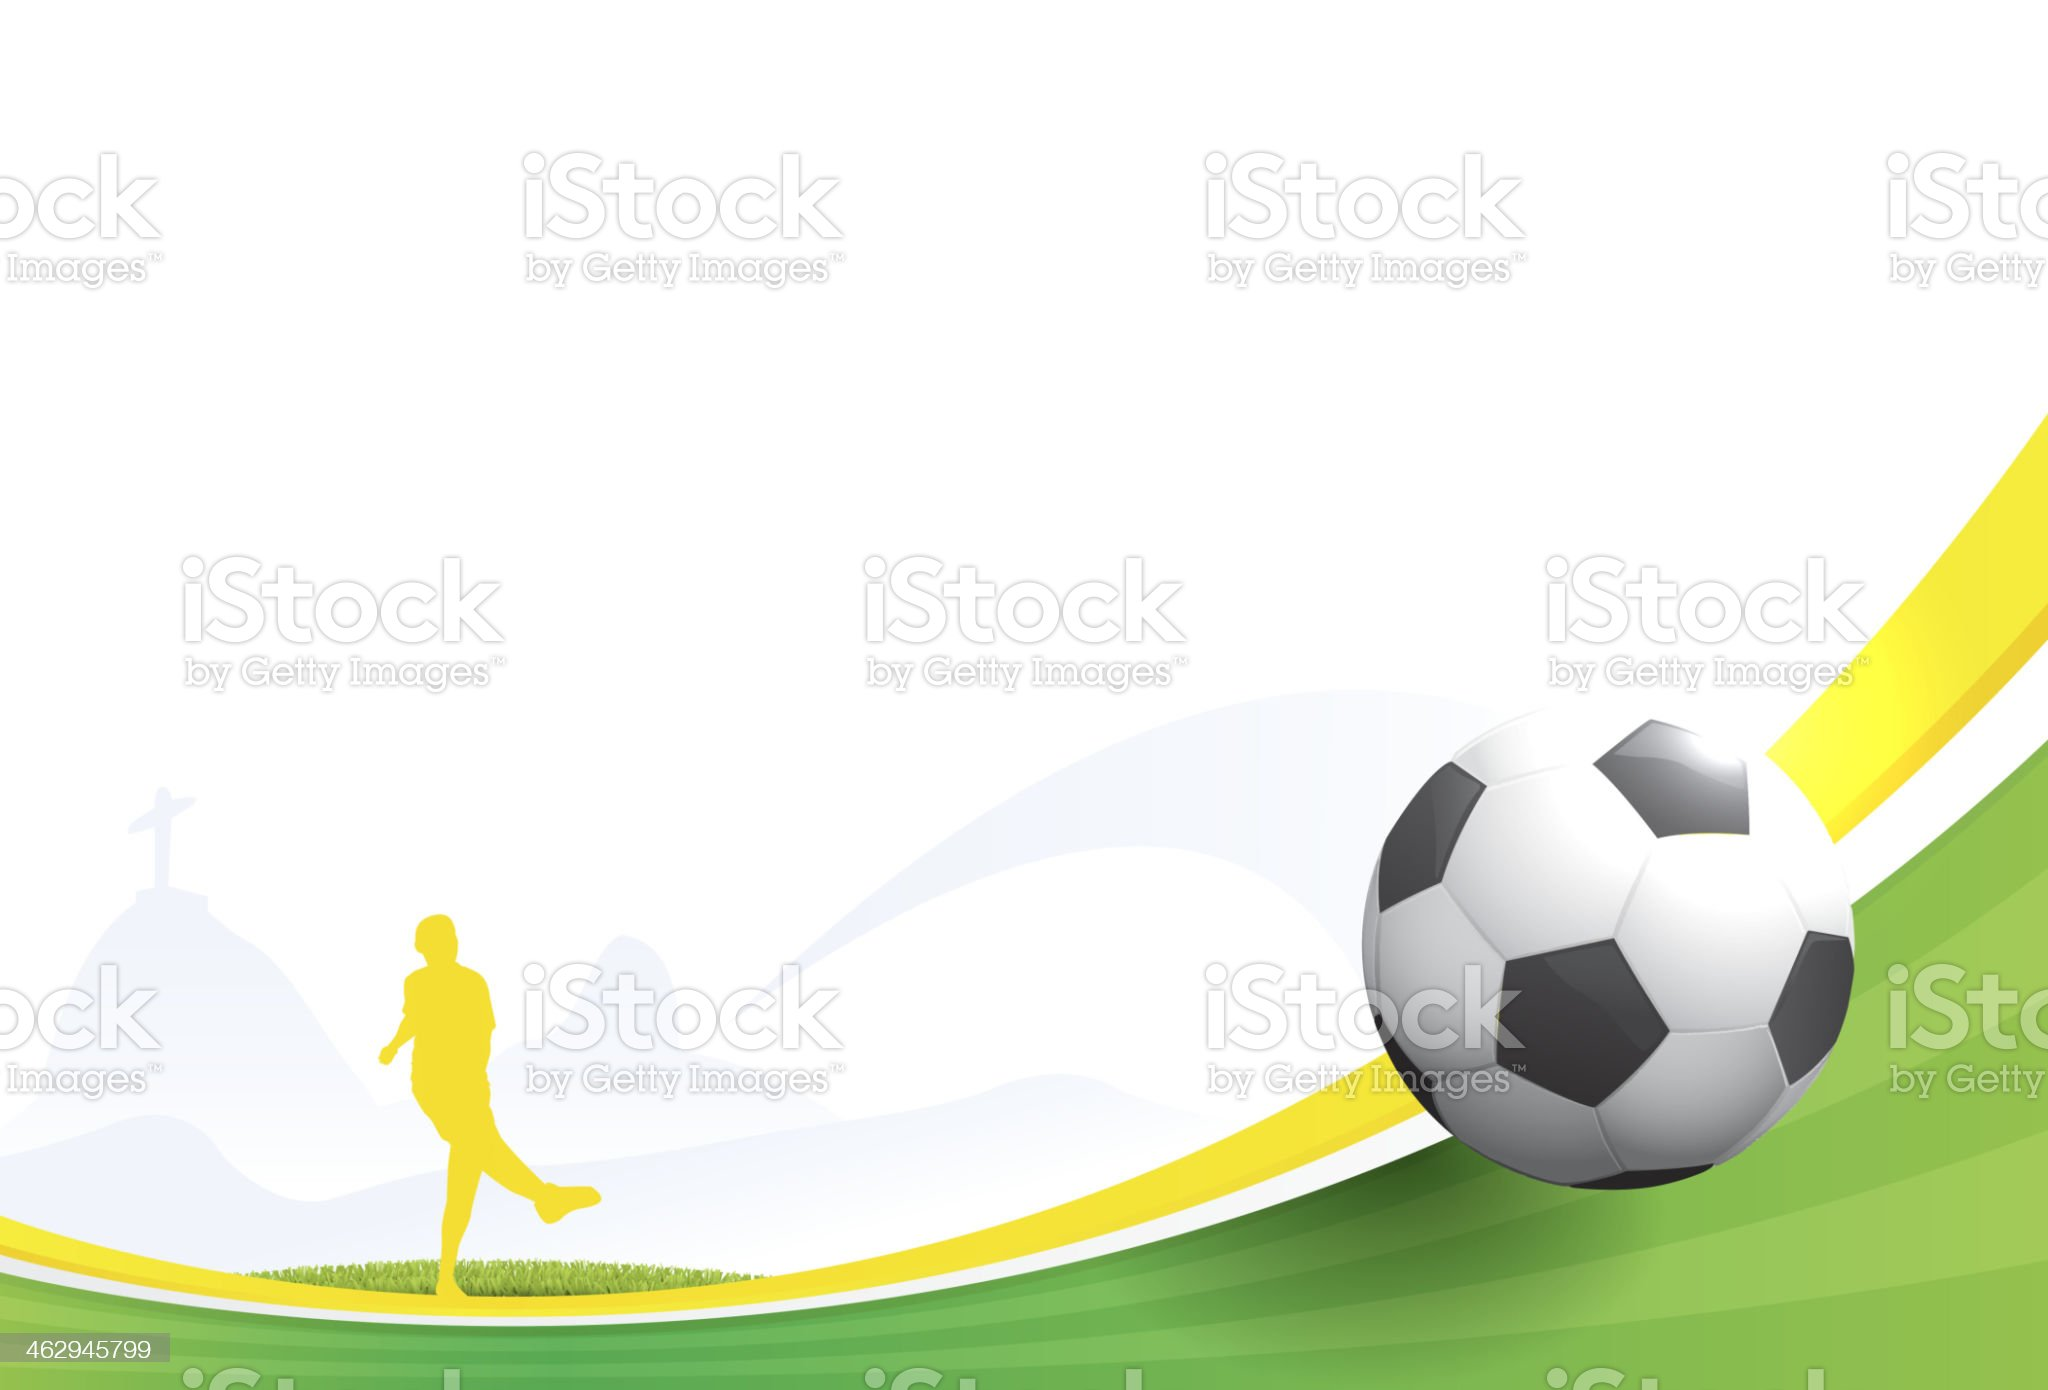 World cup football - Brazil 2014 royalty-free stock vector art